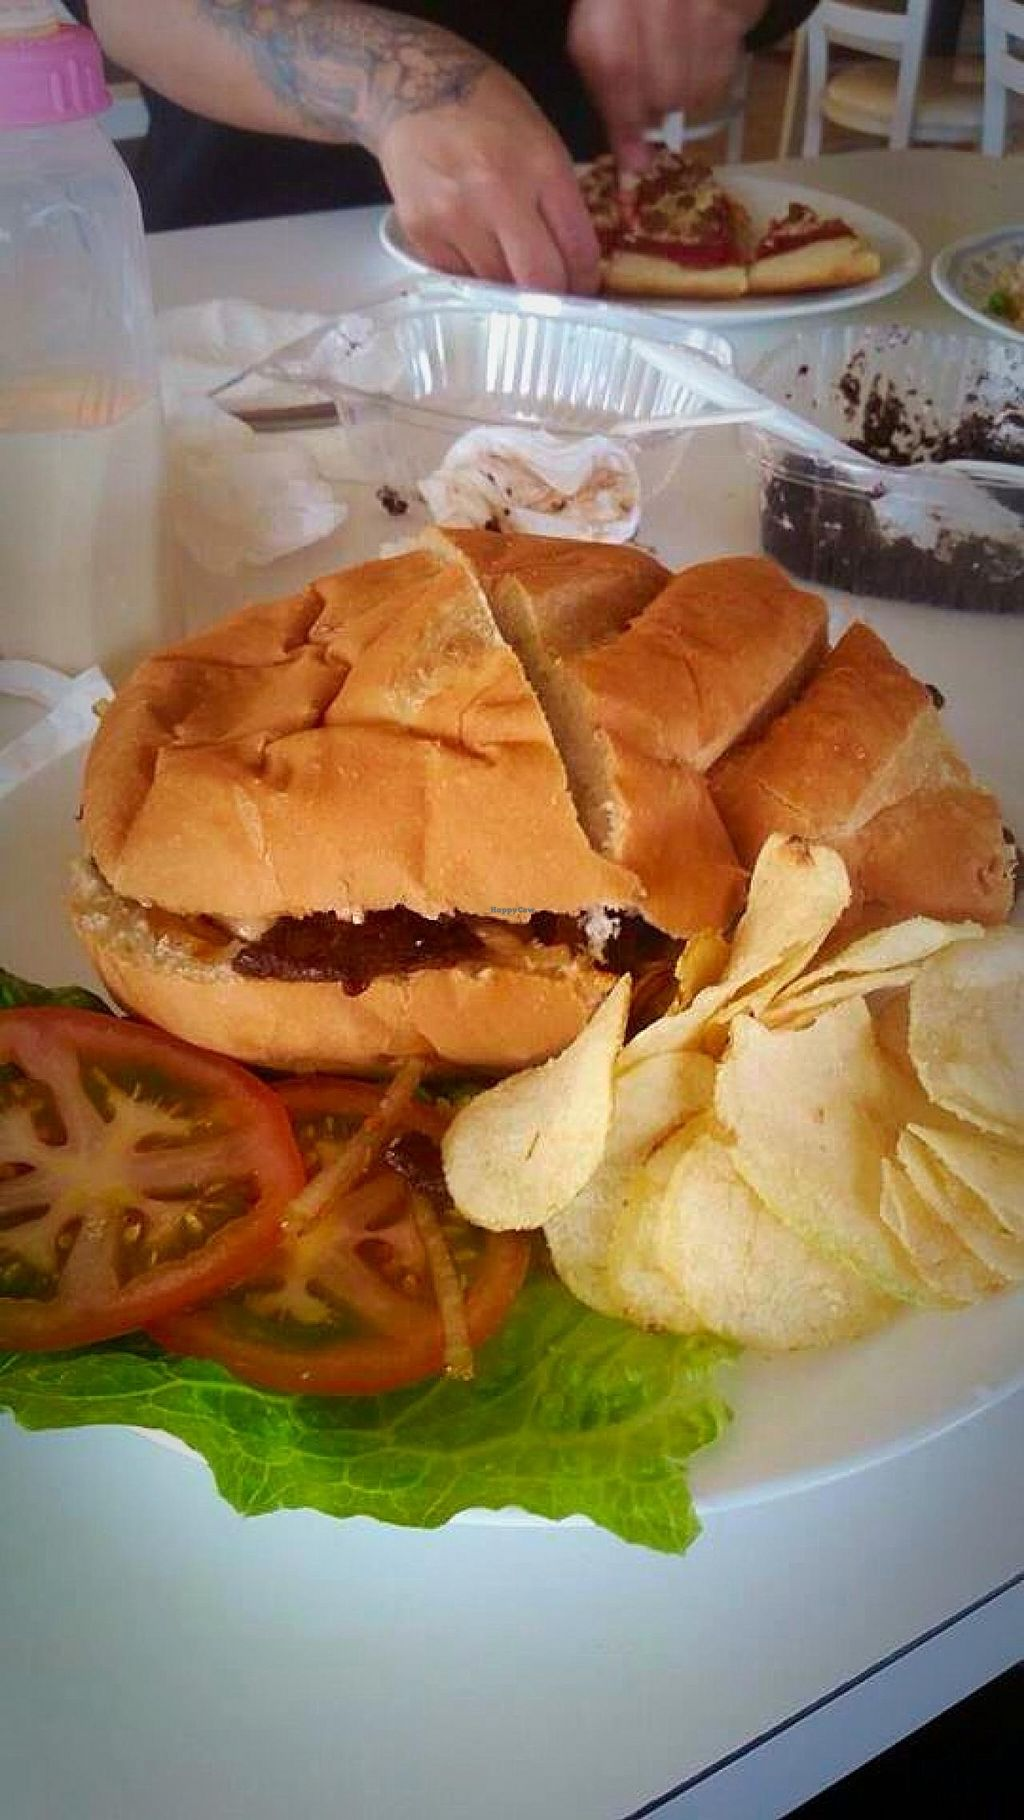 """Photo of Loving Hut - Fresno  by <a href=""""/members/profile/Flower333"""">Flower333</a> <br/>What I would say is their all star item! The PHILLY! All my meat eating friends and family are in love with this. Such great flavors and for the price it's huge! Always need to cut it in half and save for later <br/> January 27, 2015  - <a href='/contact/abuse/image/7201/91487'>Report</a>"""